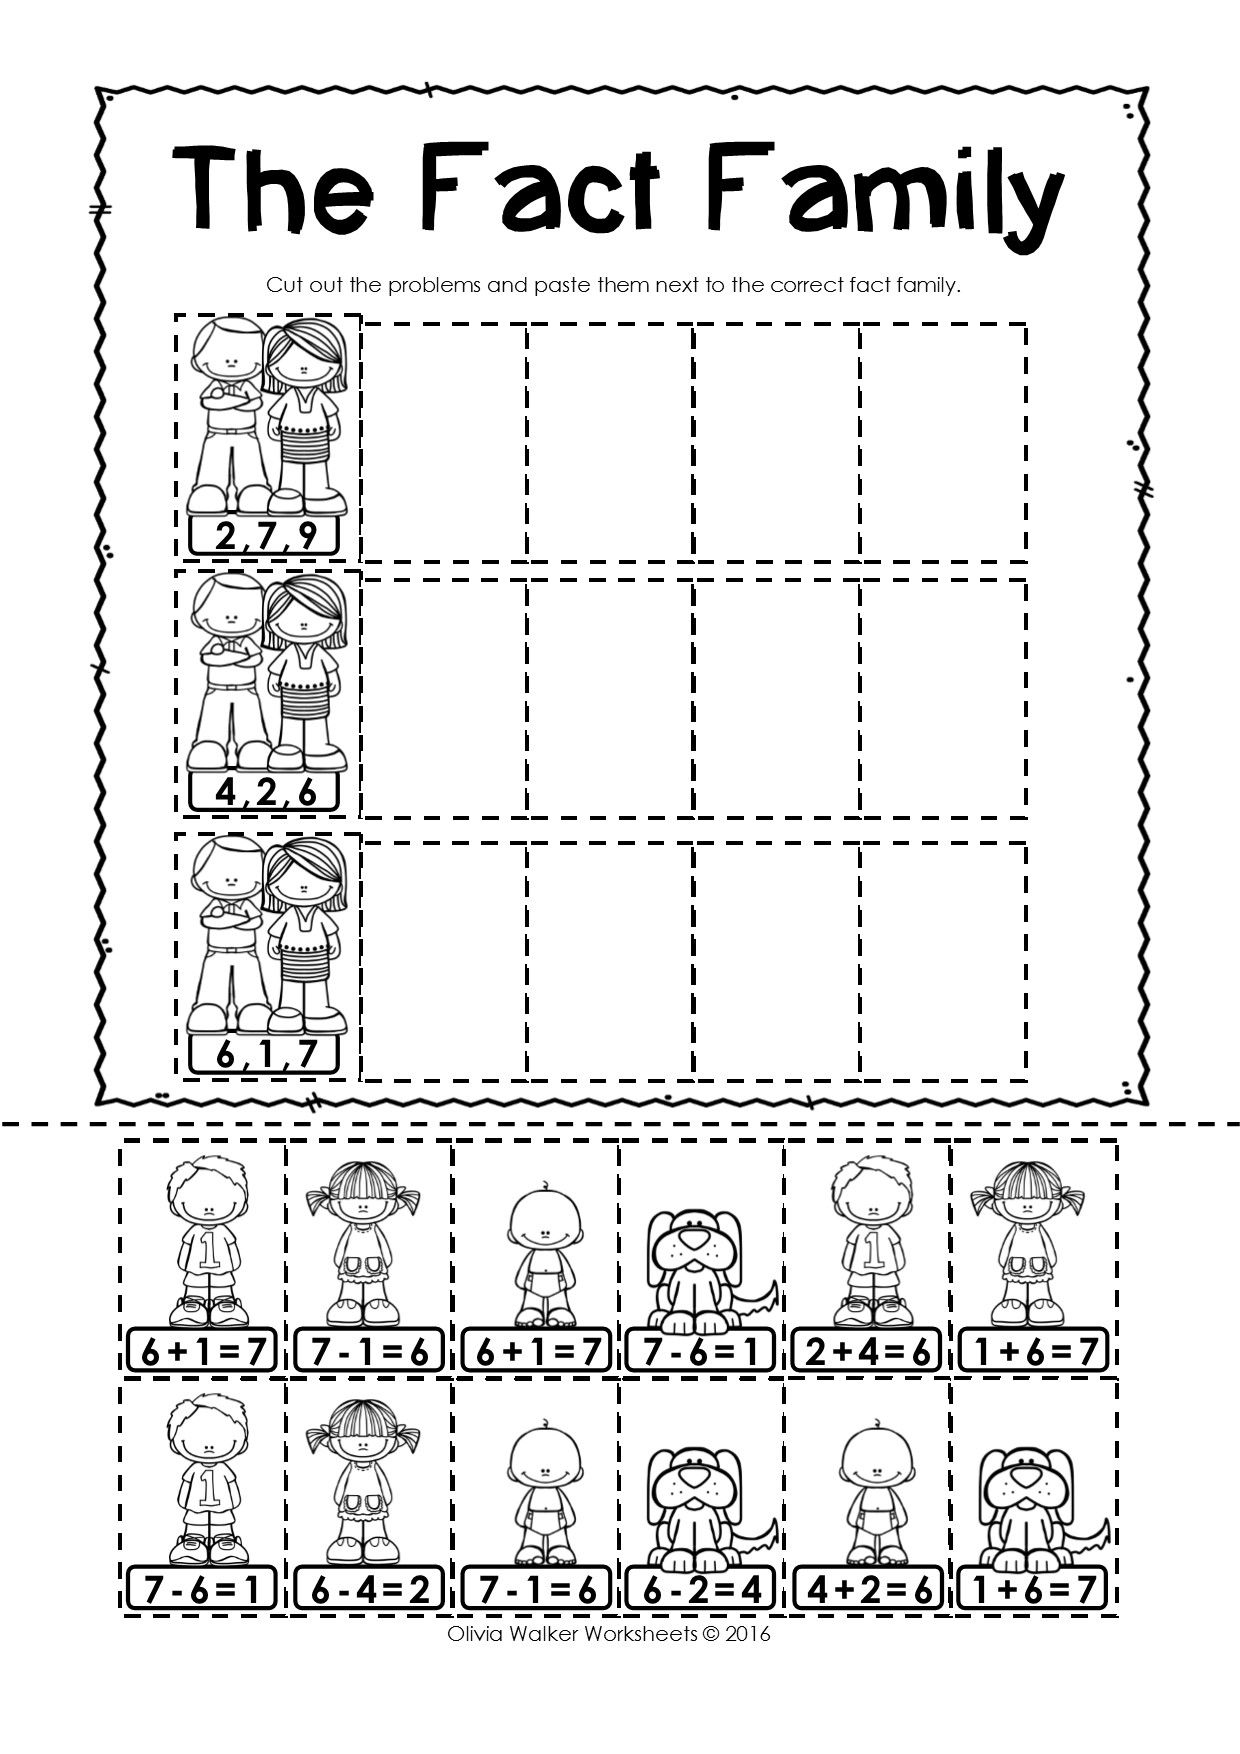 Worksheet Free Cut And Paste Worksheets Worksheet Fun